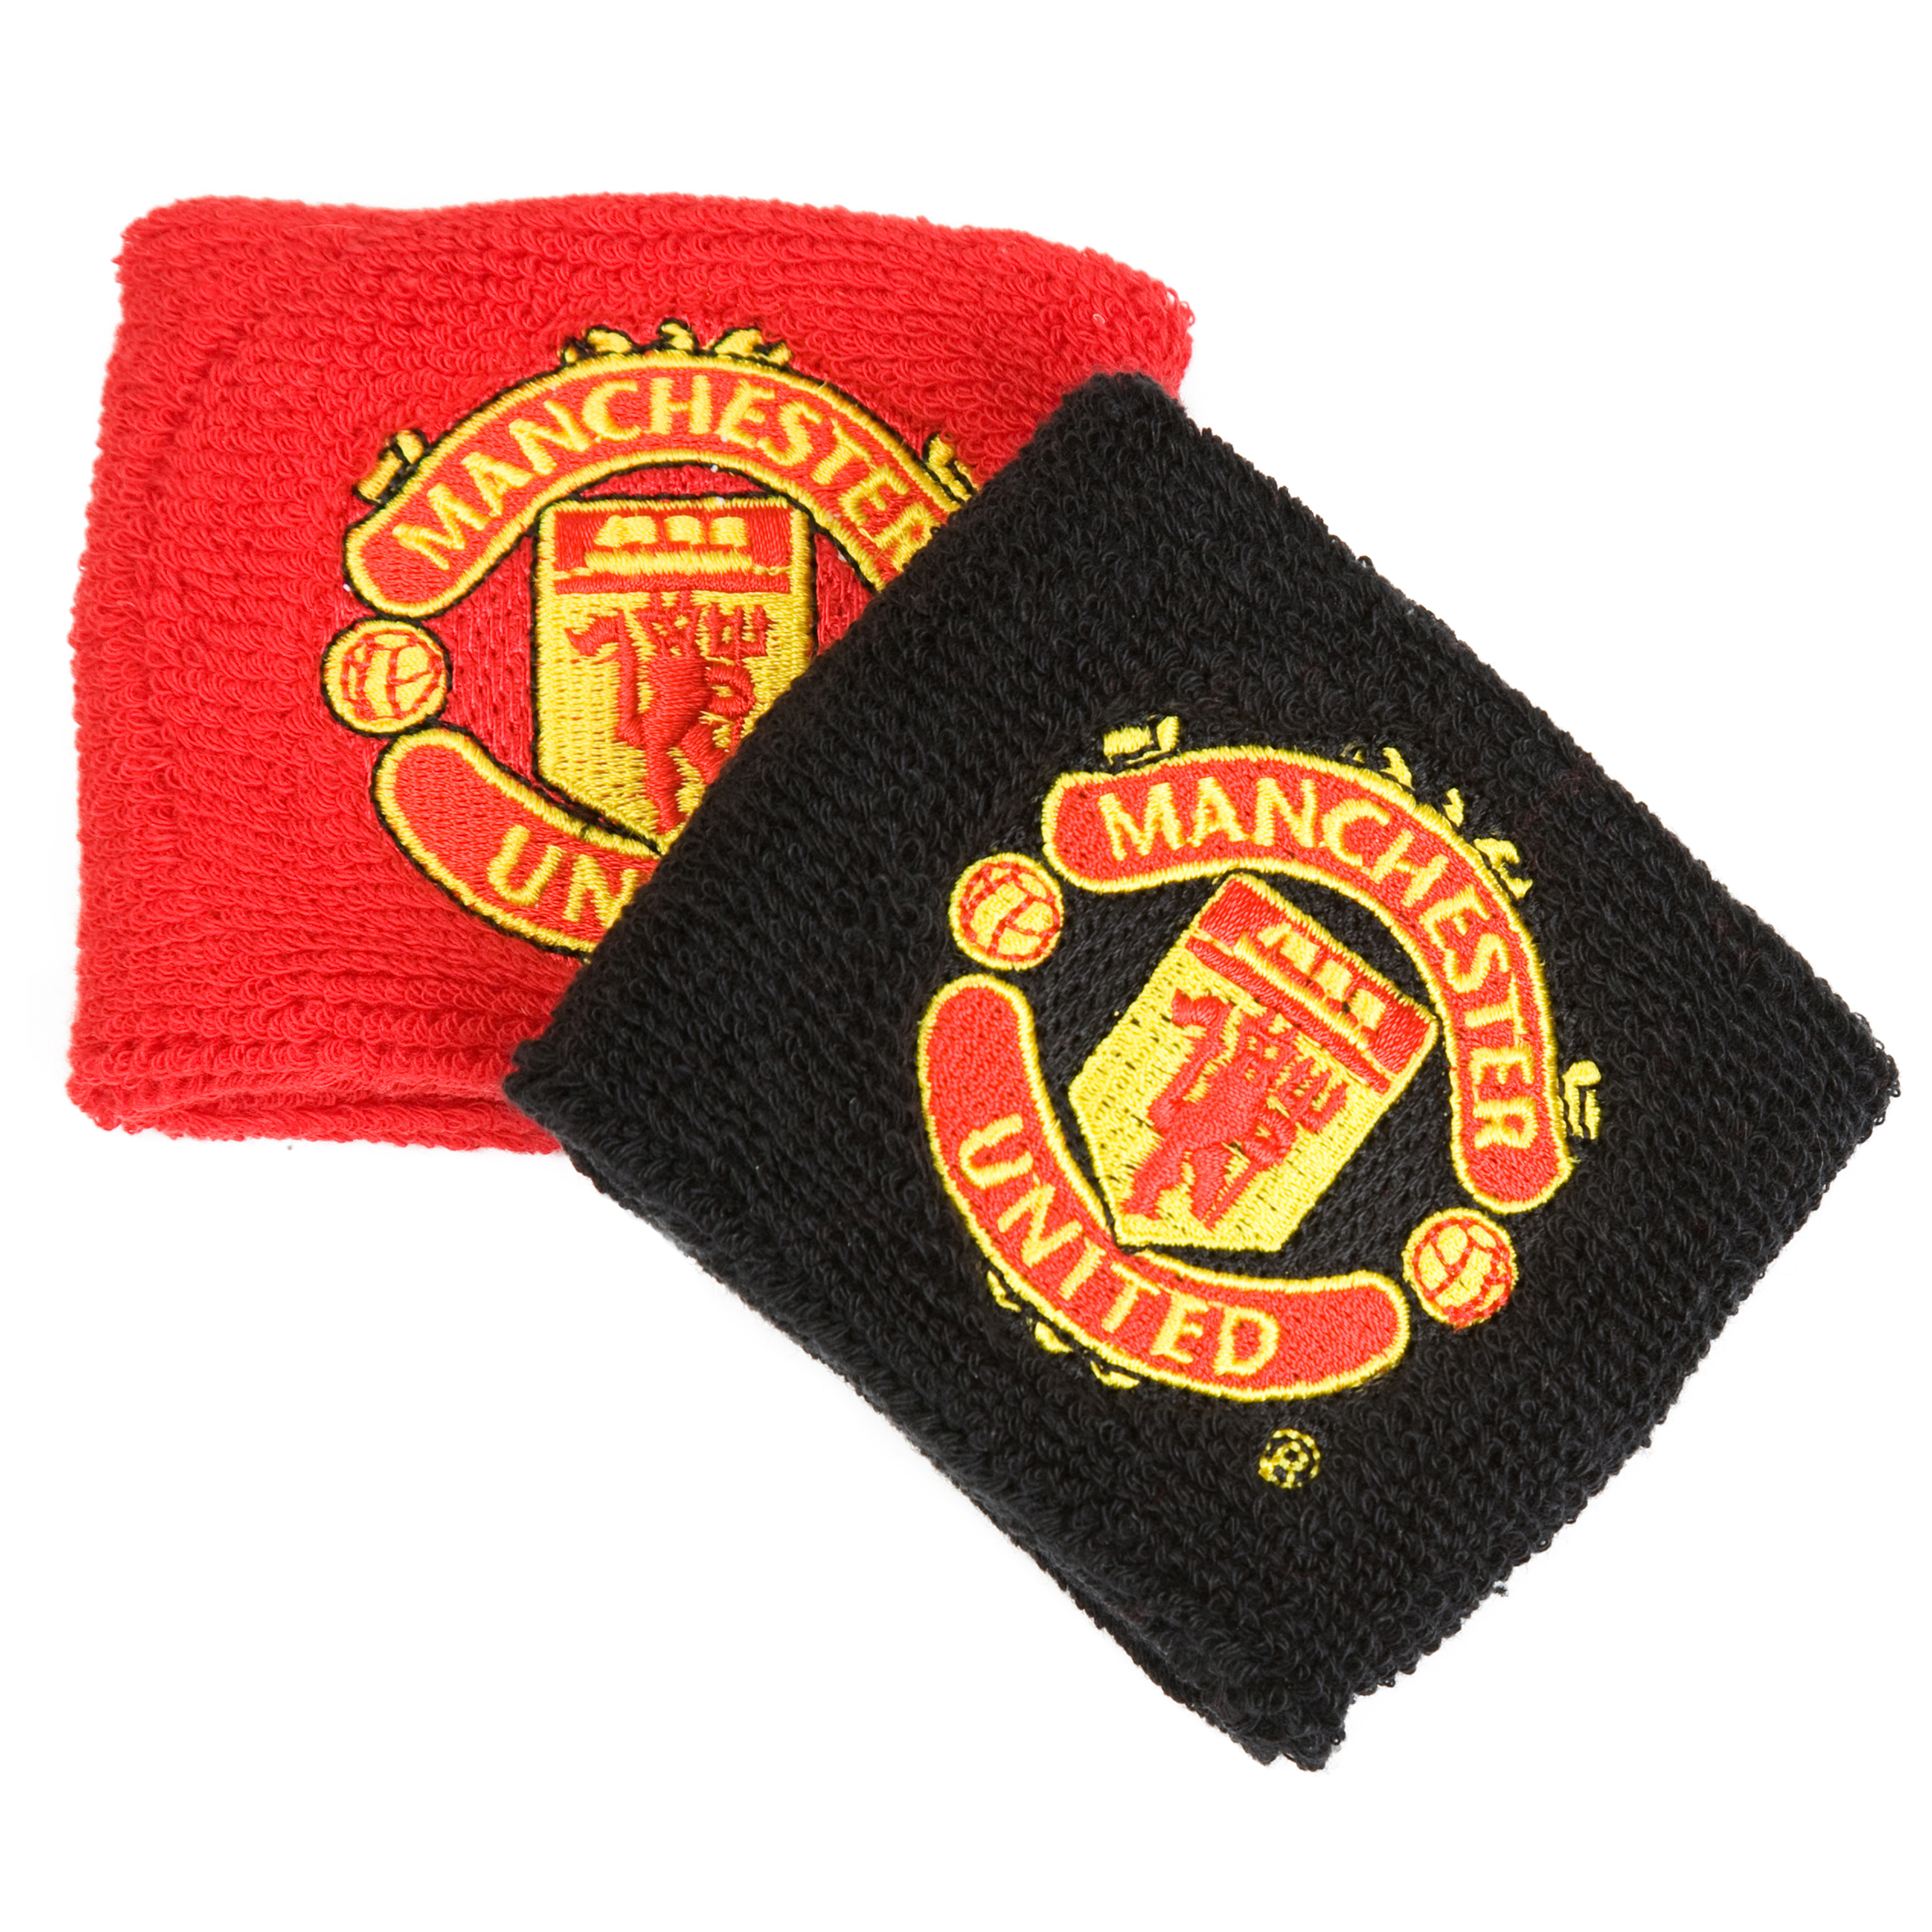 Manchester United Rubber Crest Wristband - Red/Black